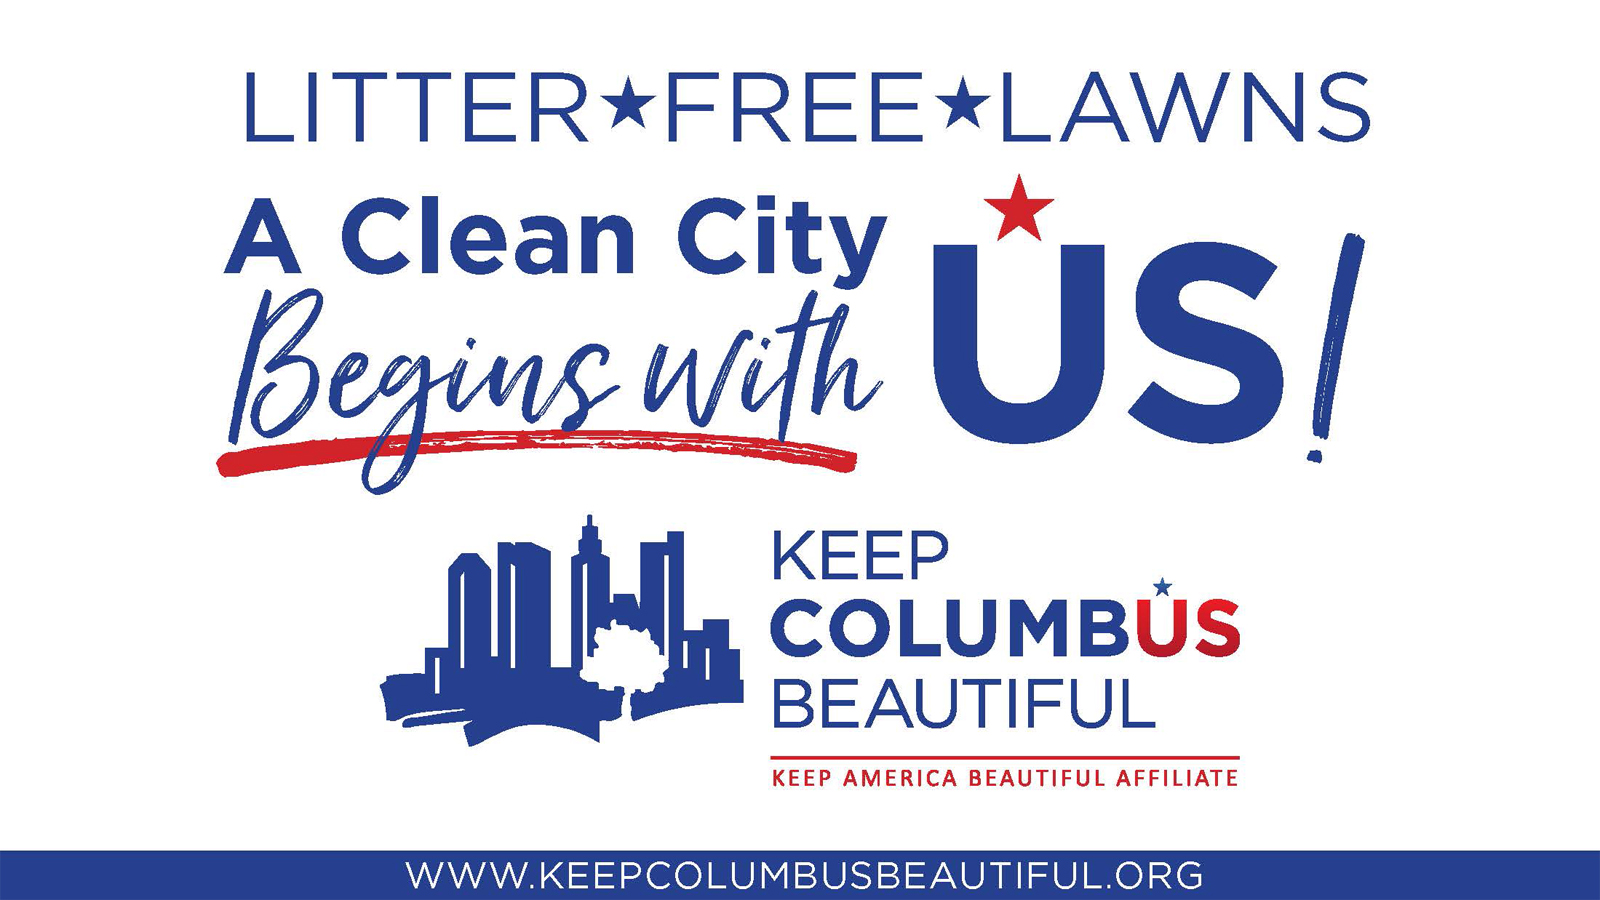 Keep Columbus Beautiful Campaign Promotes Clean Lawns